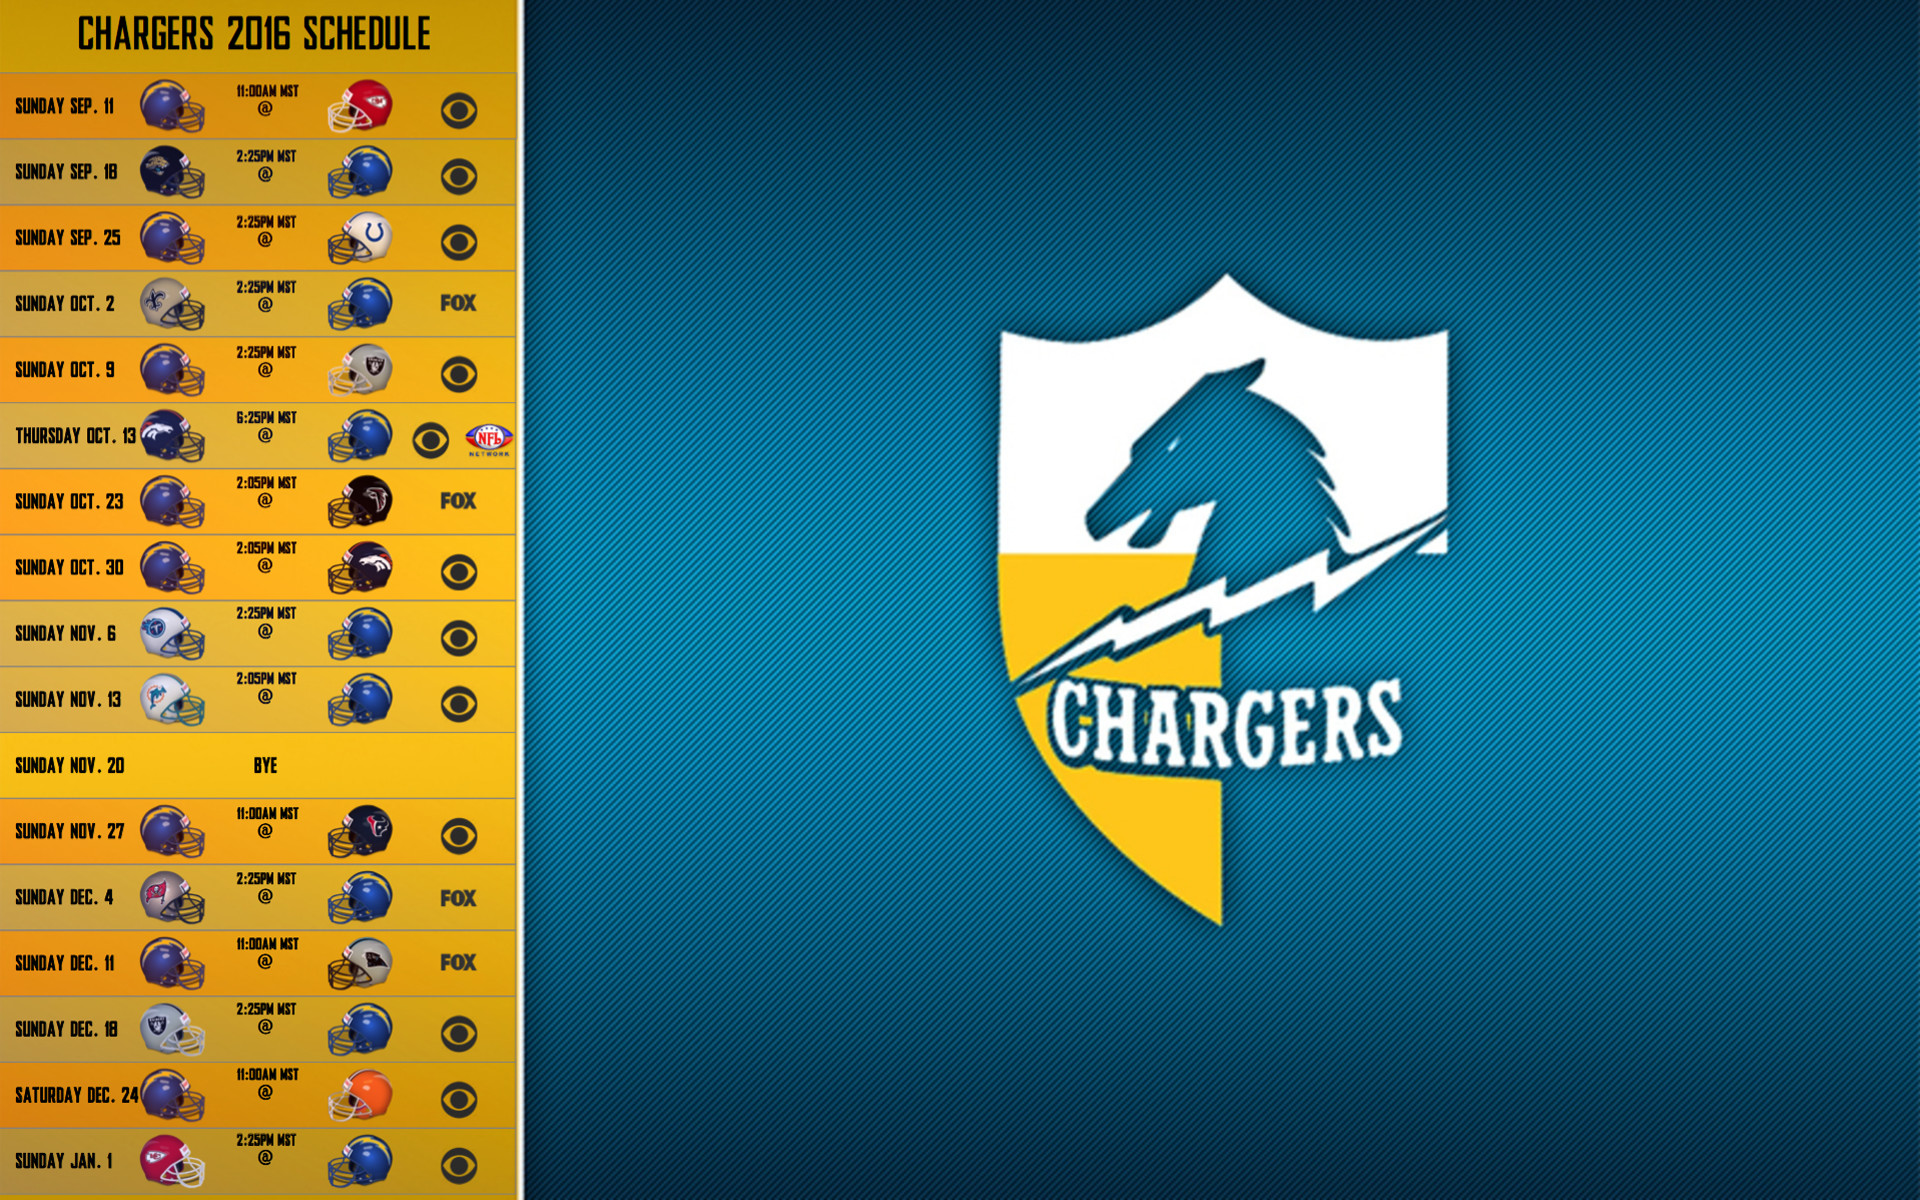 1920x1200 San Diego Chargers 2016 schedule wallpaper 1920 x 1200